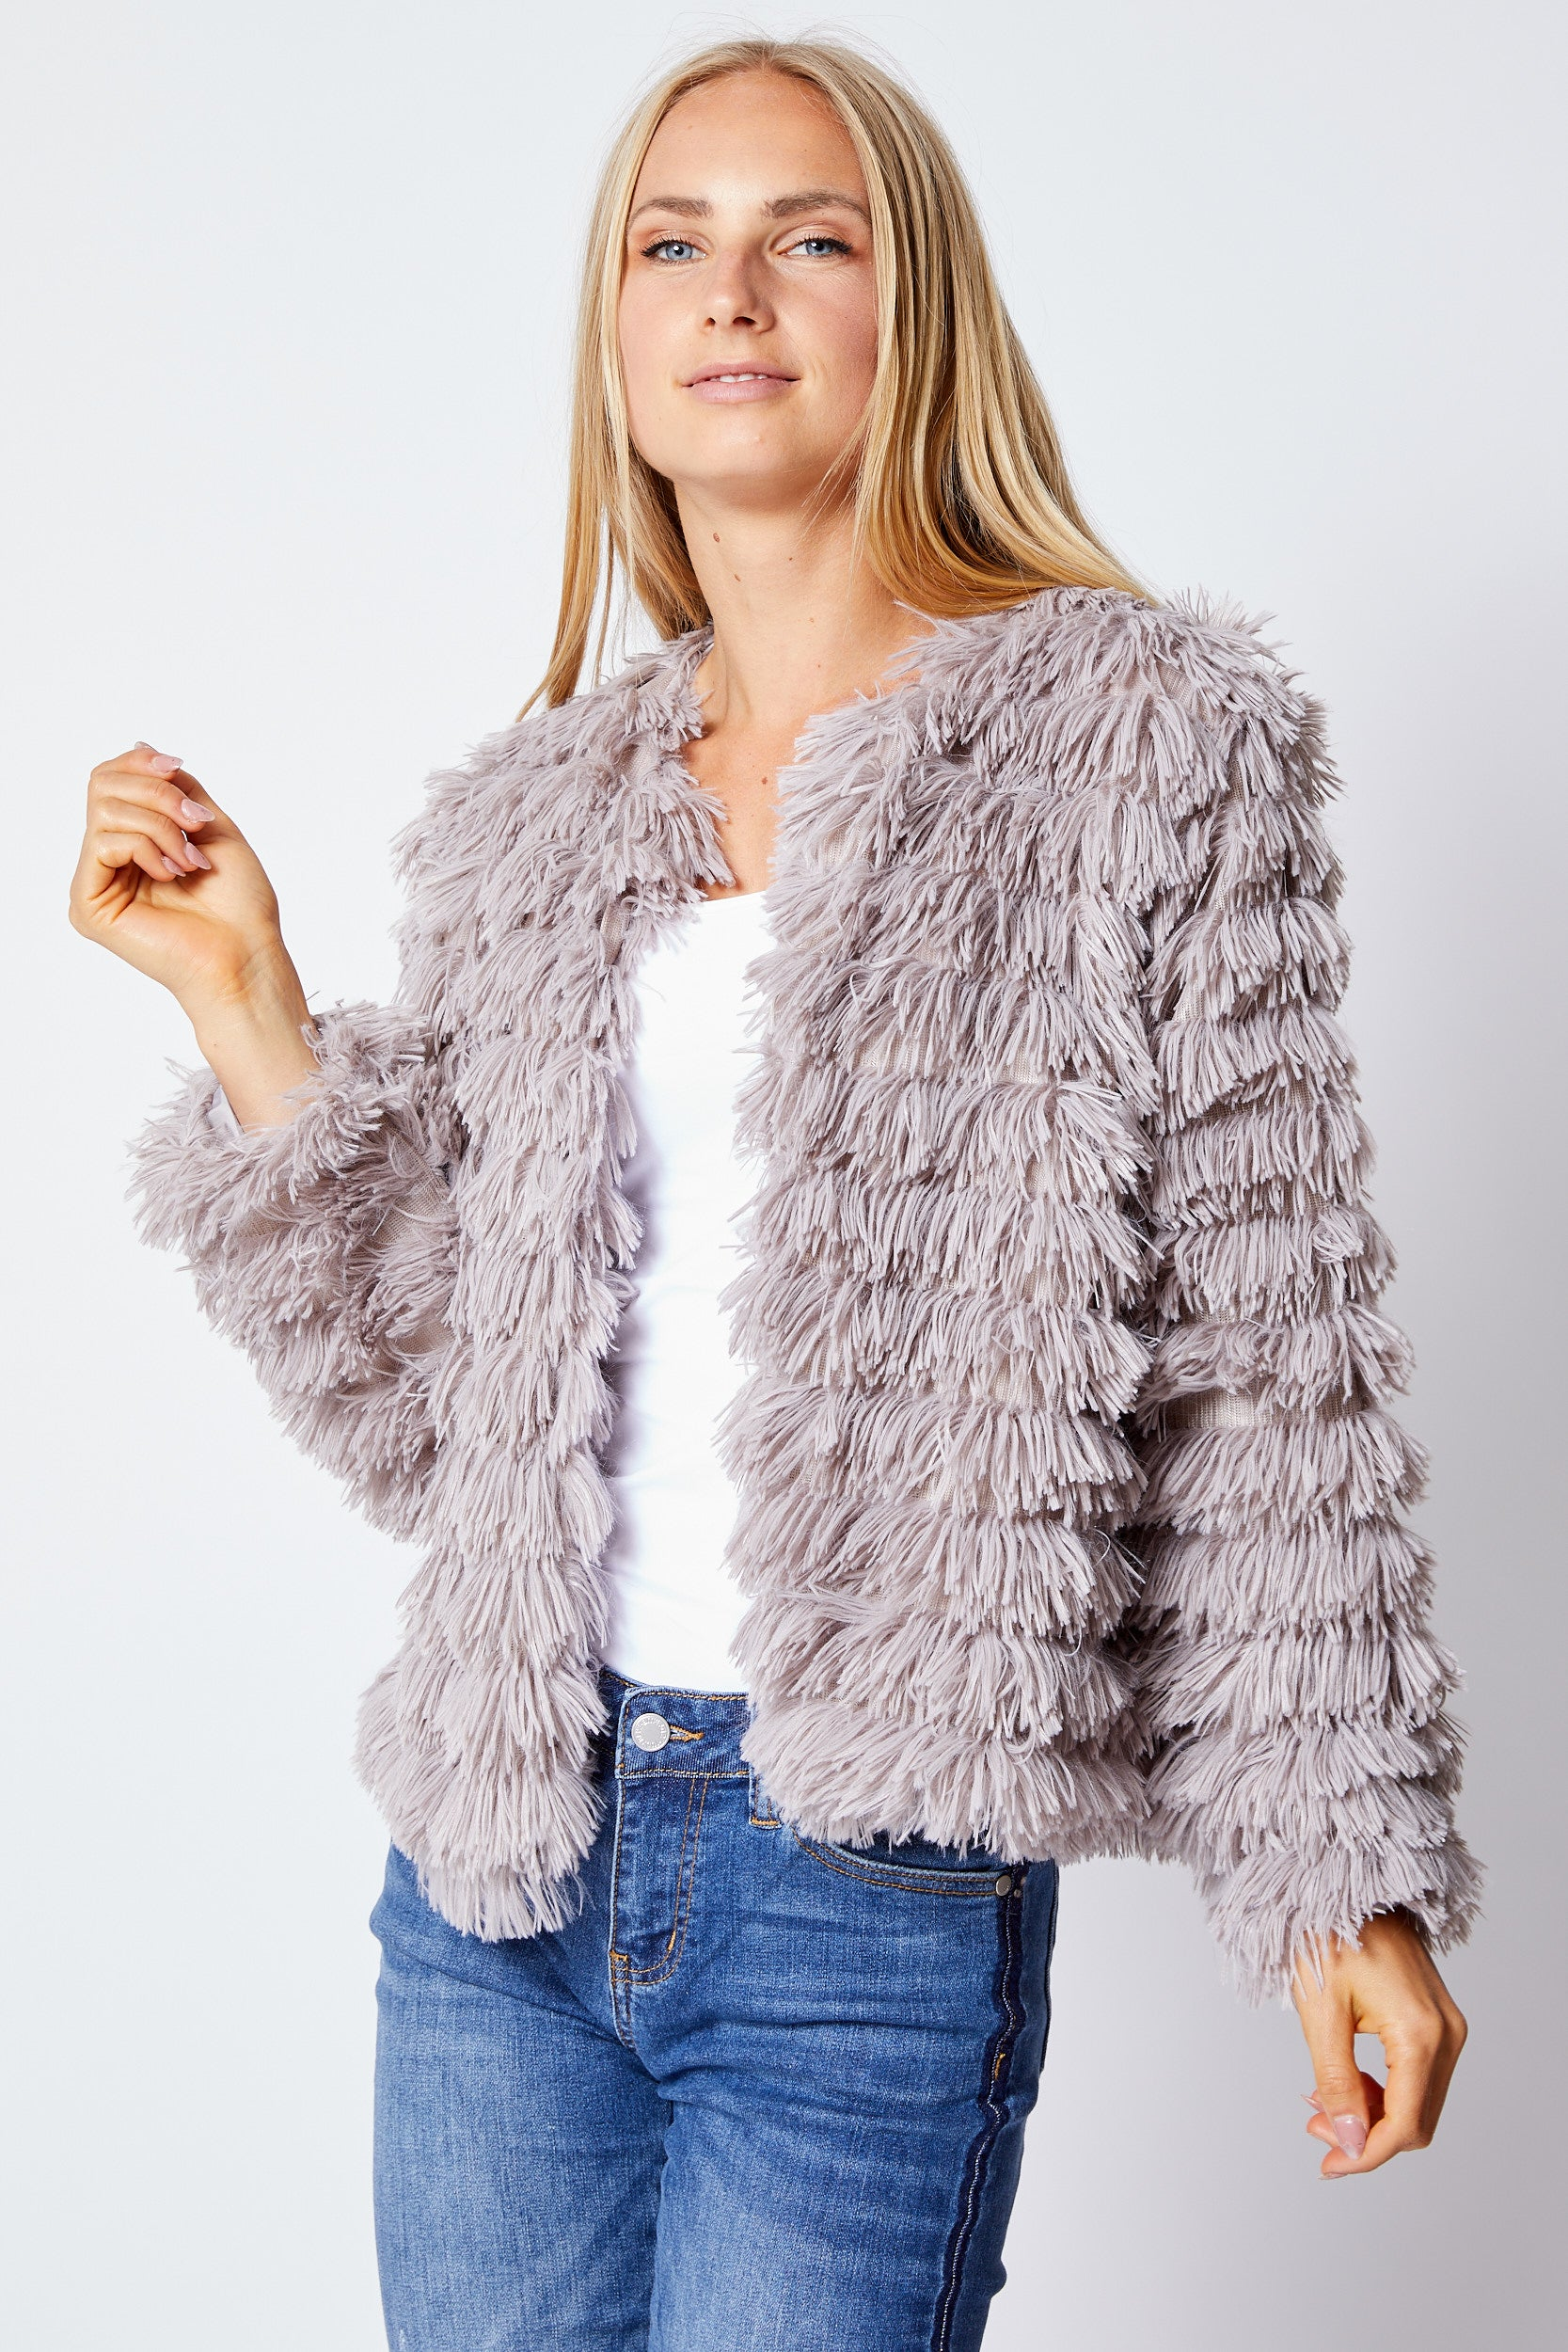 Fluffy Crop Jacket - Jacqueline B Clothing